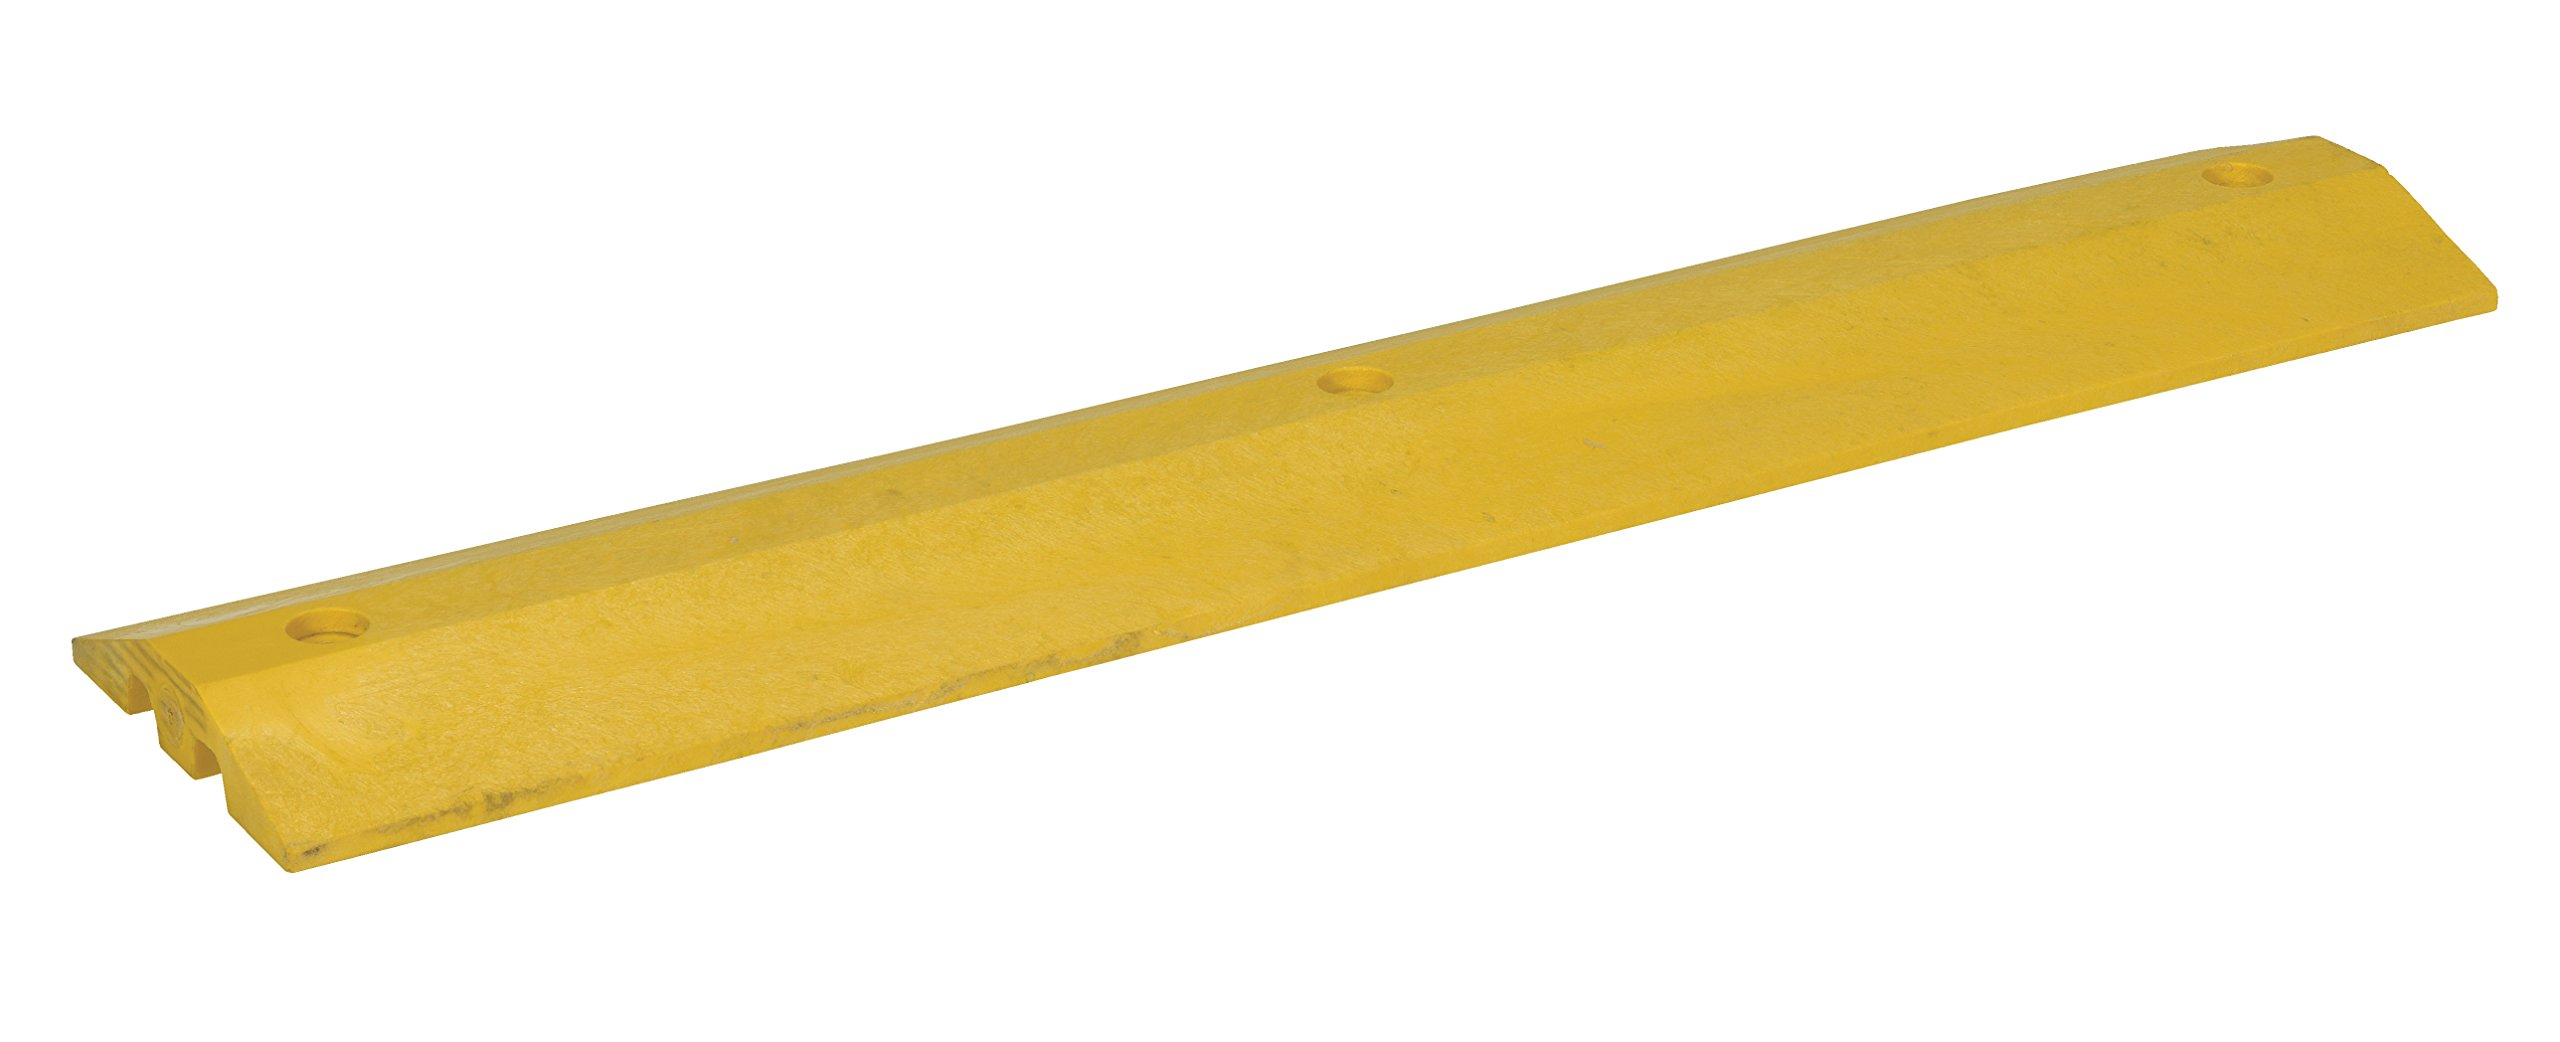 Vestil SB-48 Speed Bump with Concrete Hardware, Plastic, 48'' Length, 10'' Width, 2'' Height